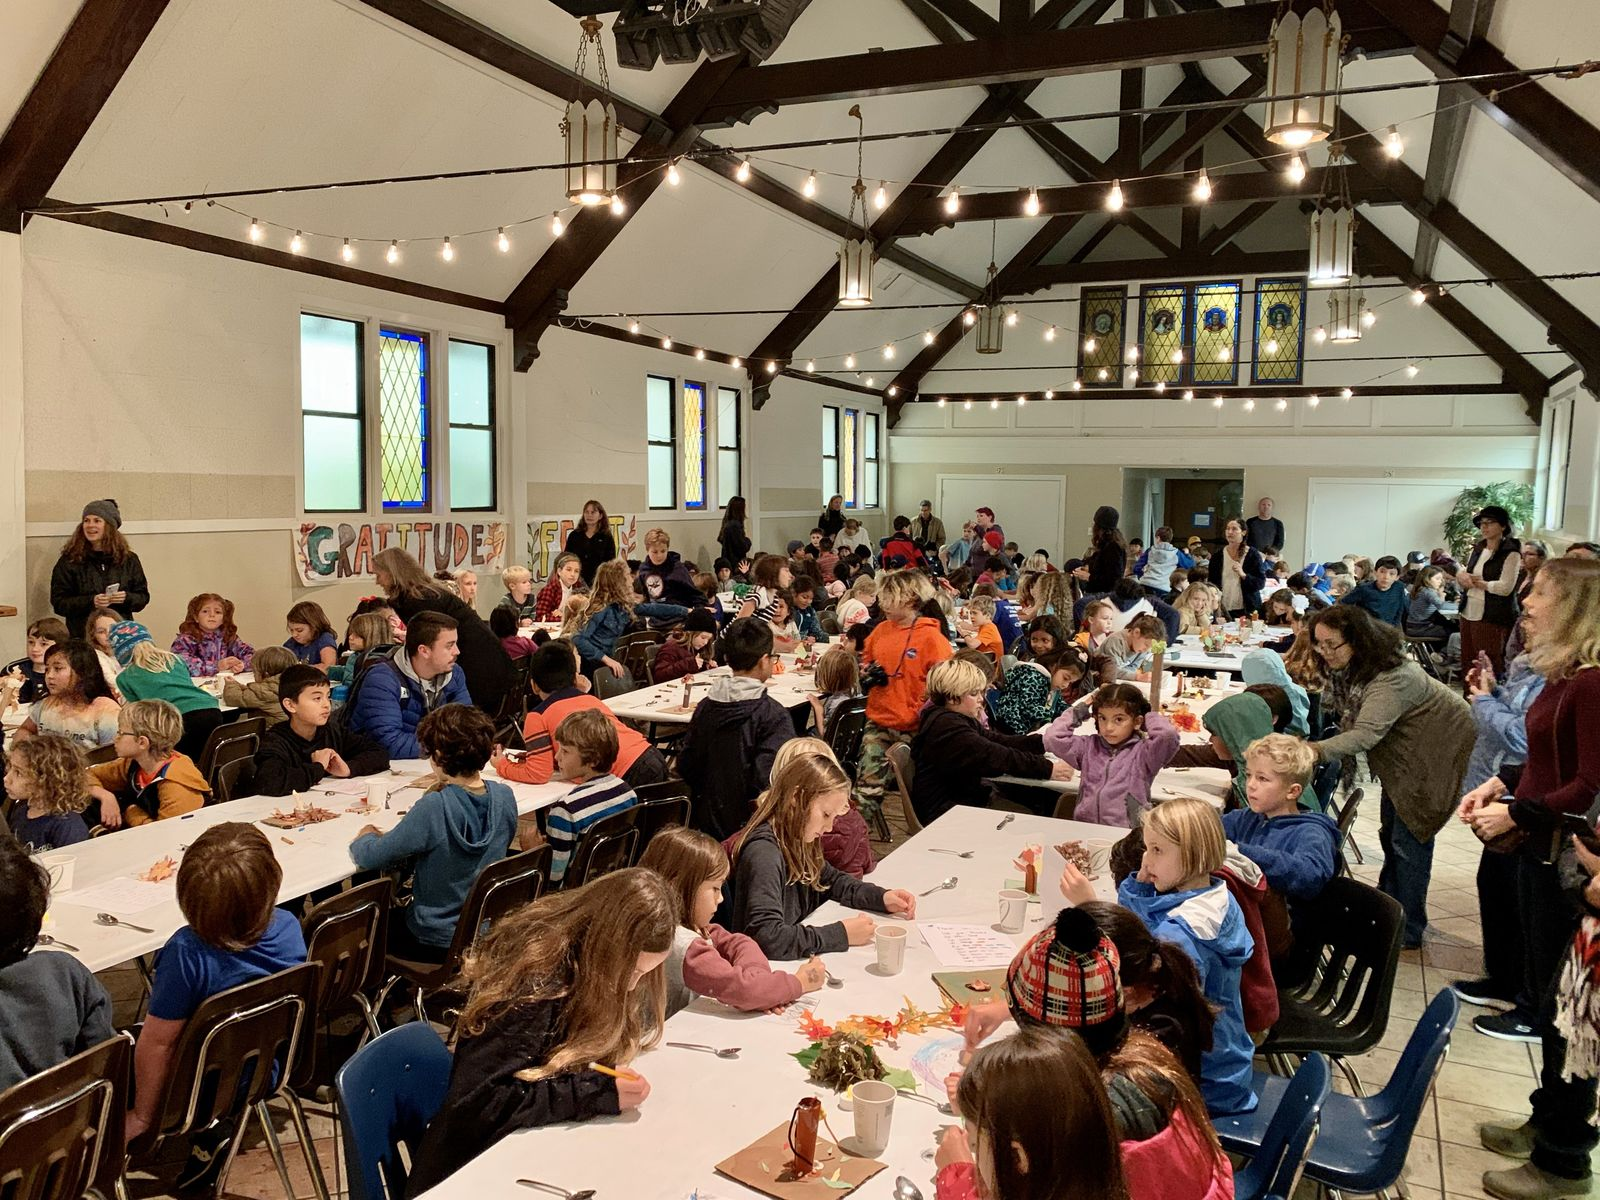 Image of the Grattitude Feast in the school Hall